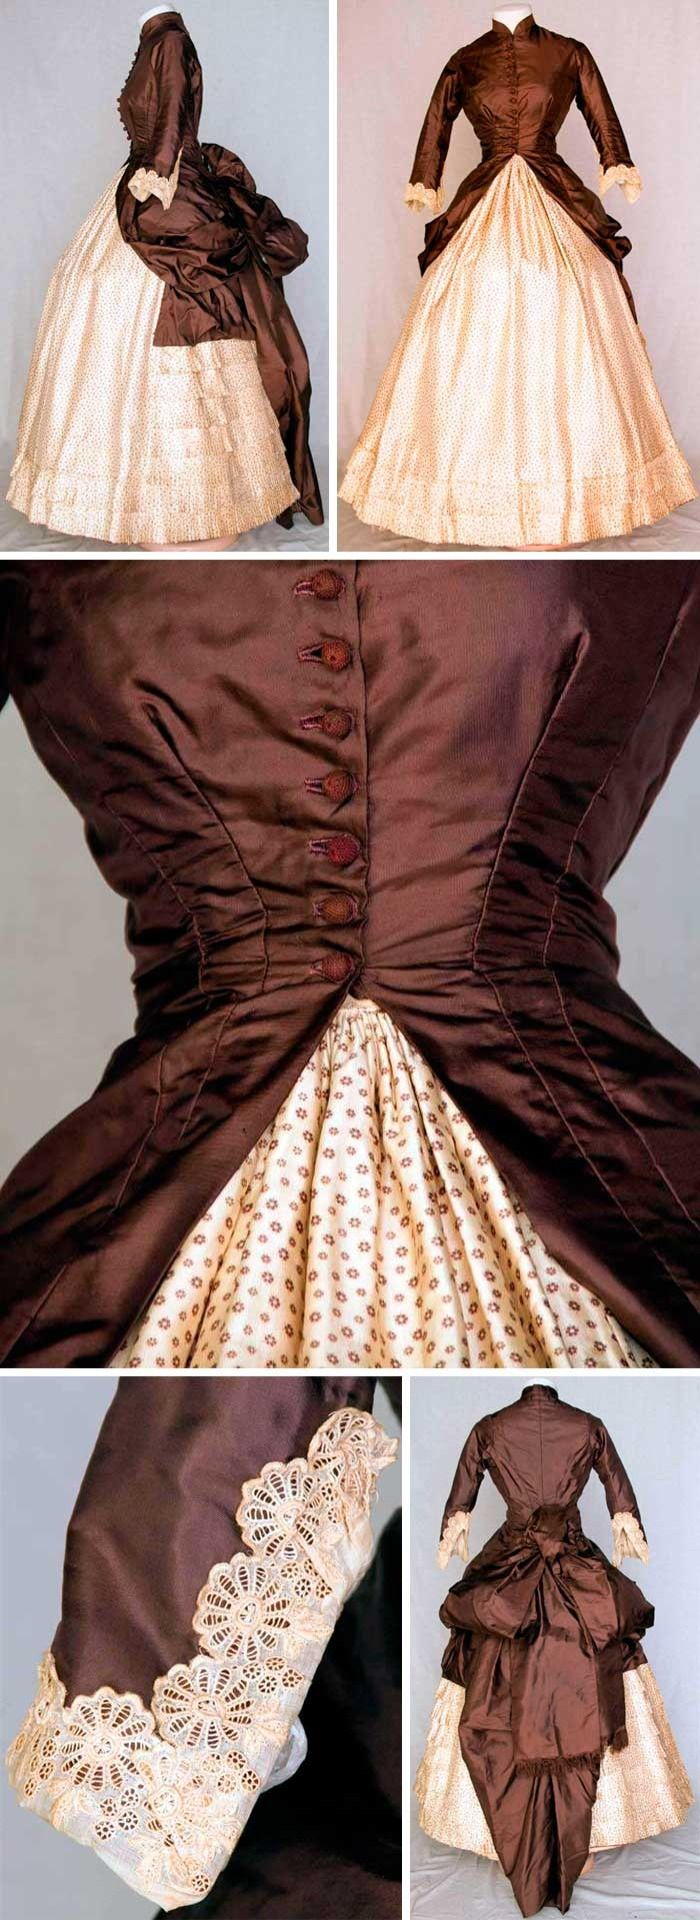 Dress, ca. 1880. Chocolate brown silk polonaise bodice dips at the sides to drape and form back bustle. Ten crochet ball buttons, embroidered lace cuffs, tan cotton lining. Cream silk twill skirt with...